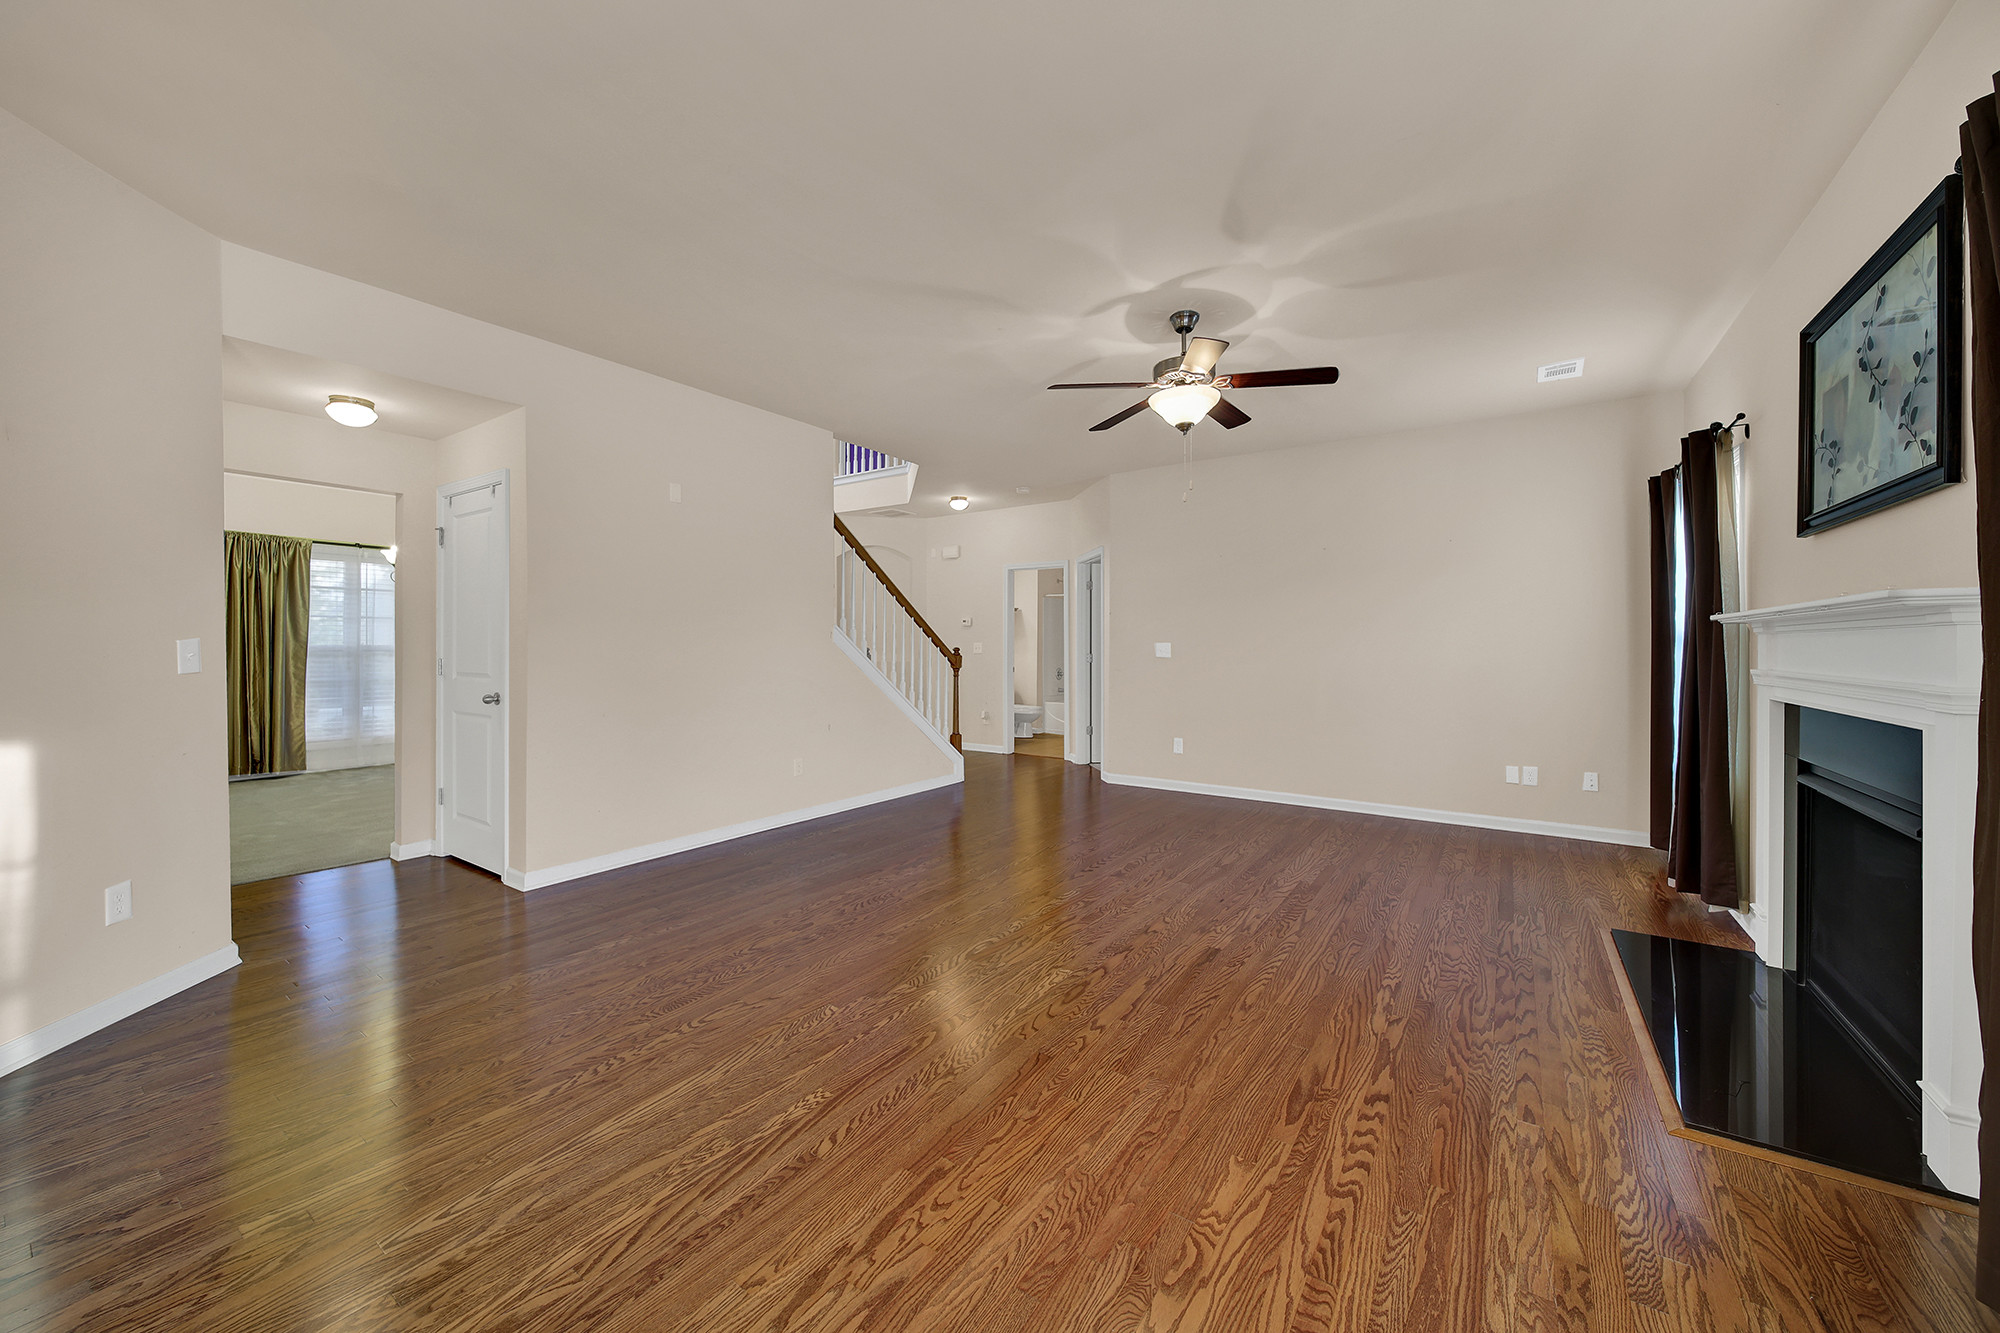 Prefinished Hardwood Flooring Charlotte Nc Of Kiswuana Green Realtor at Keller Williams Inside Dcim100mediadji 0095